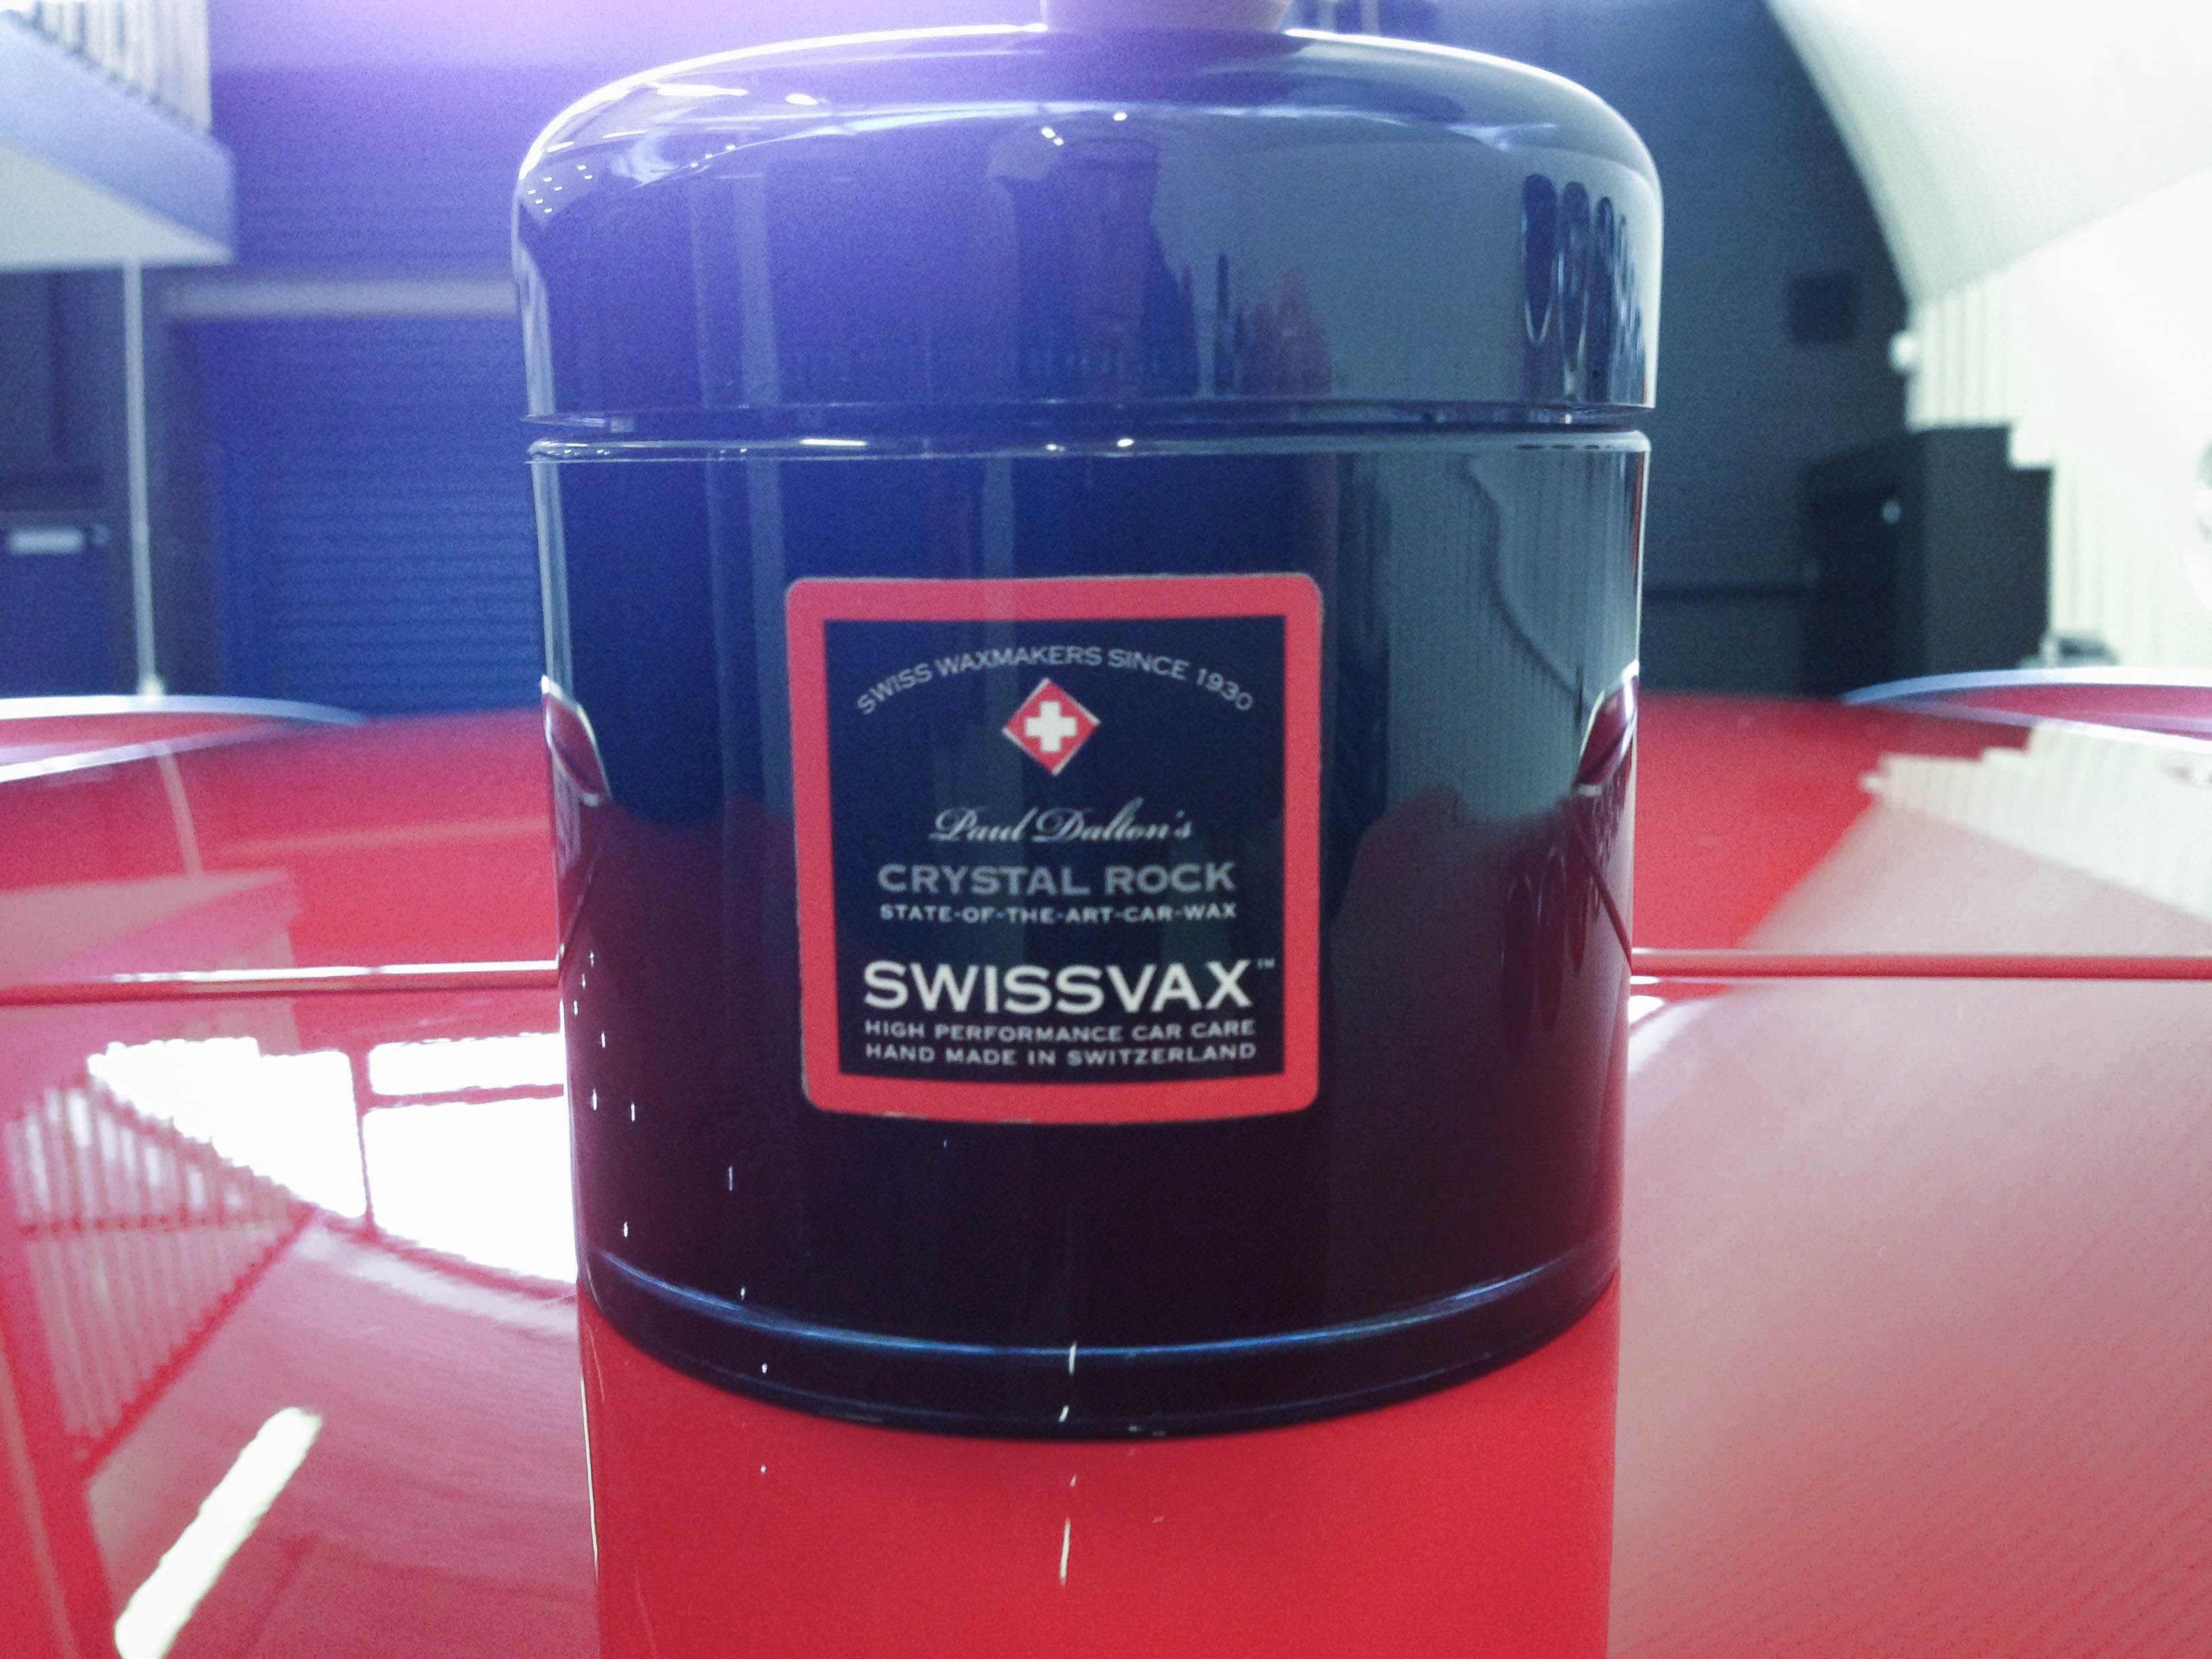 Audi A3 (Misano Red) – Finished in Swissvax Crystal Rock